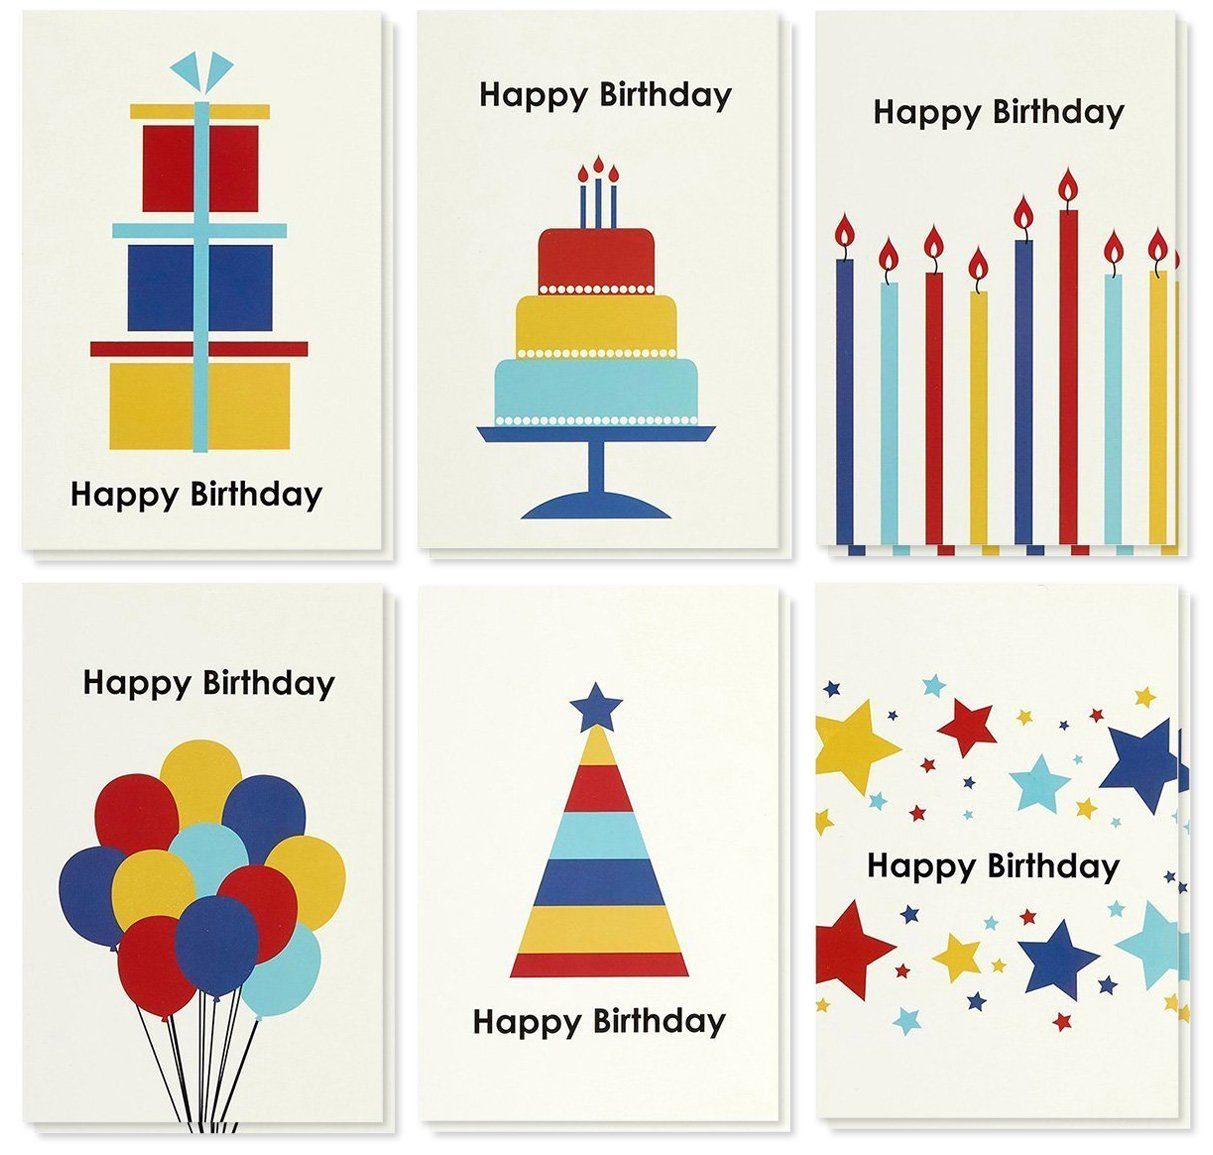 Birthday Card - 48-Pack Birthday Cards Box Set, Wood Happy Birthday Cards - Assorted Party Designs Birthday Card Bulk, Kraft Paper Envelopes Included, 4 x 6 inches